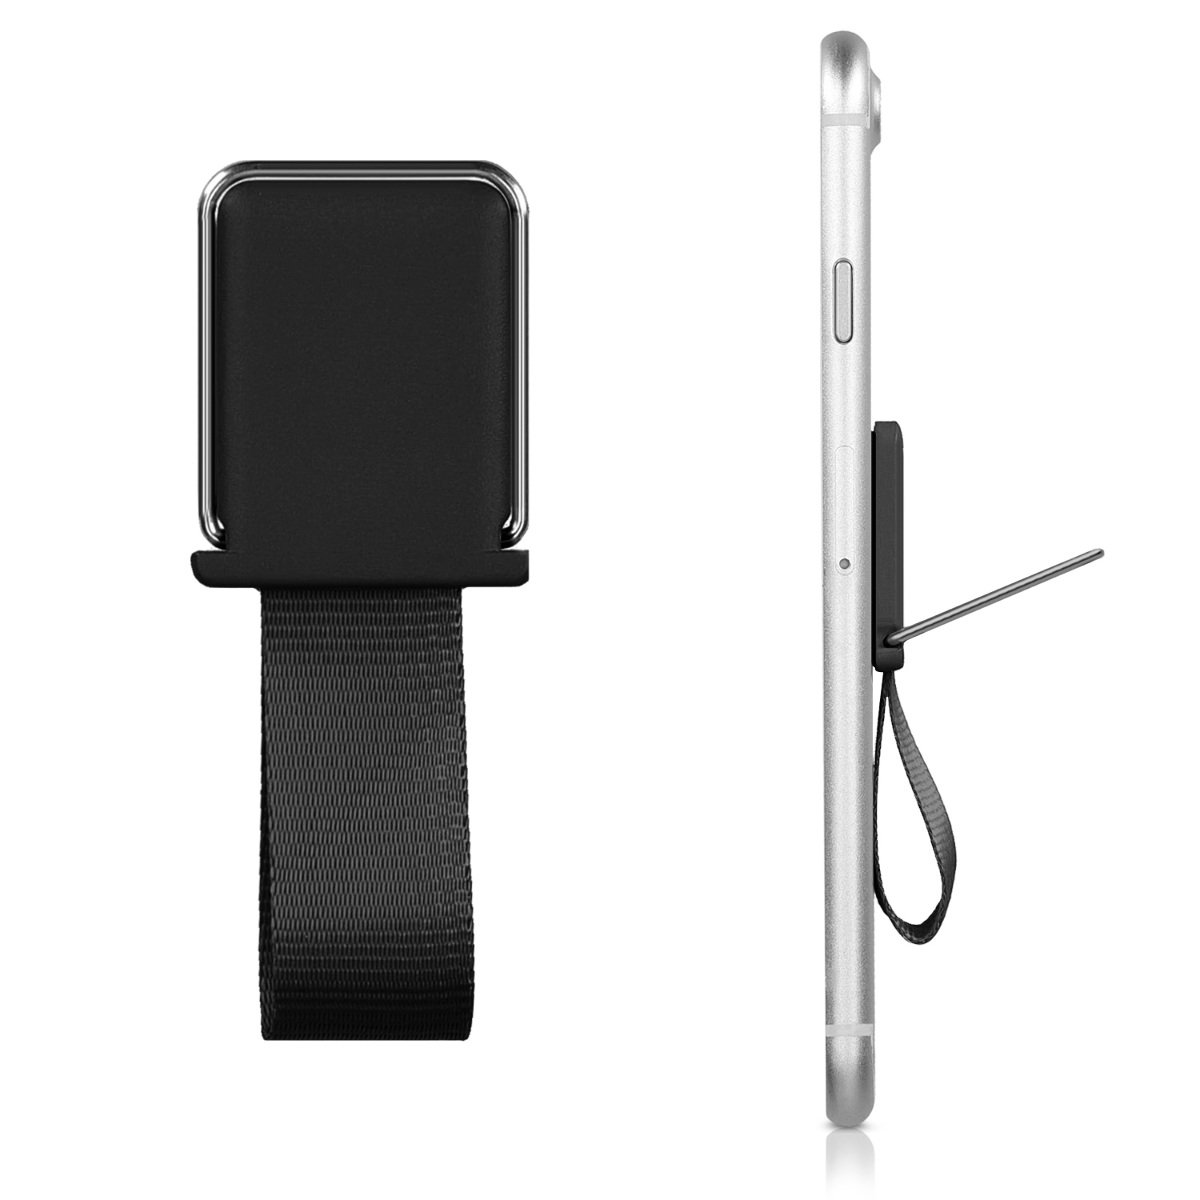 Works with Magnetic Car Mount with Stand Compatible with iPhone Samsung HTC Nokia Google iPad Mini kwmobile Universal Magnetic Finger Holder for Smartphones